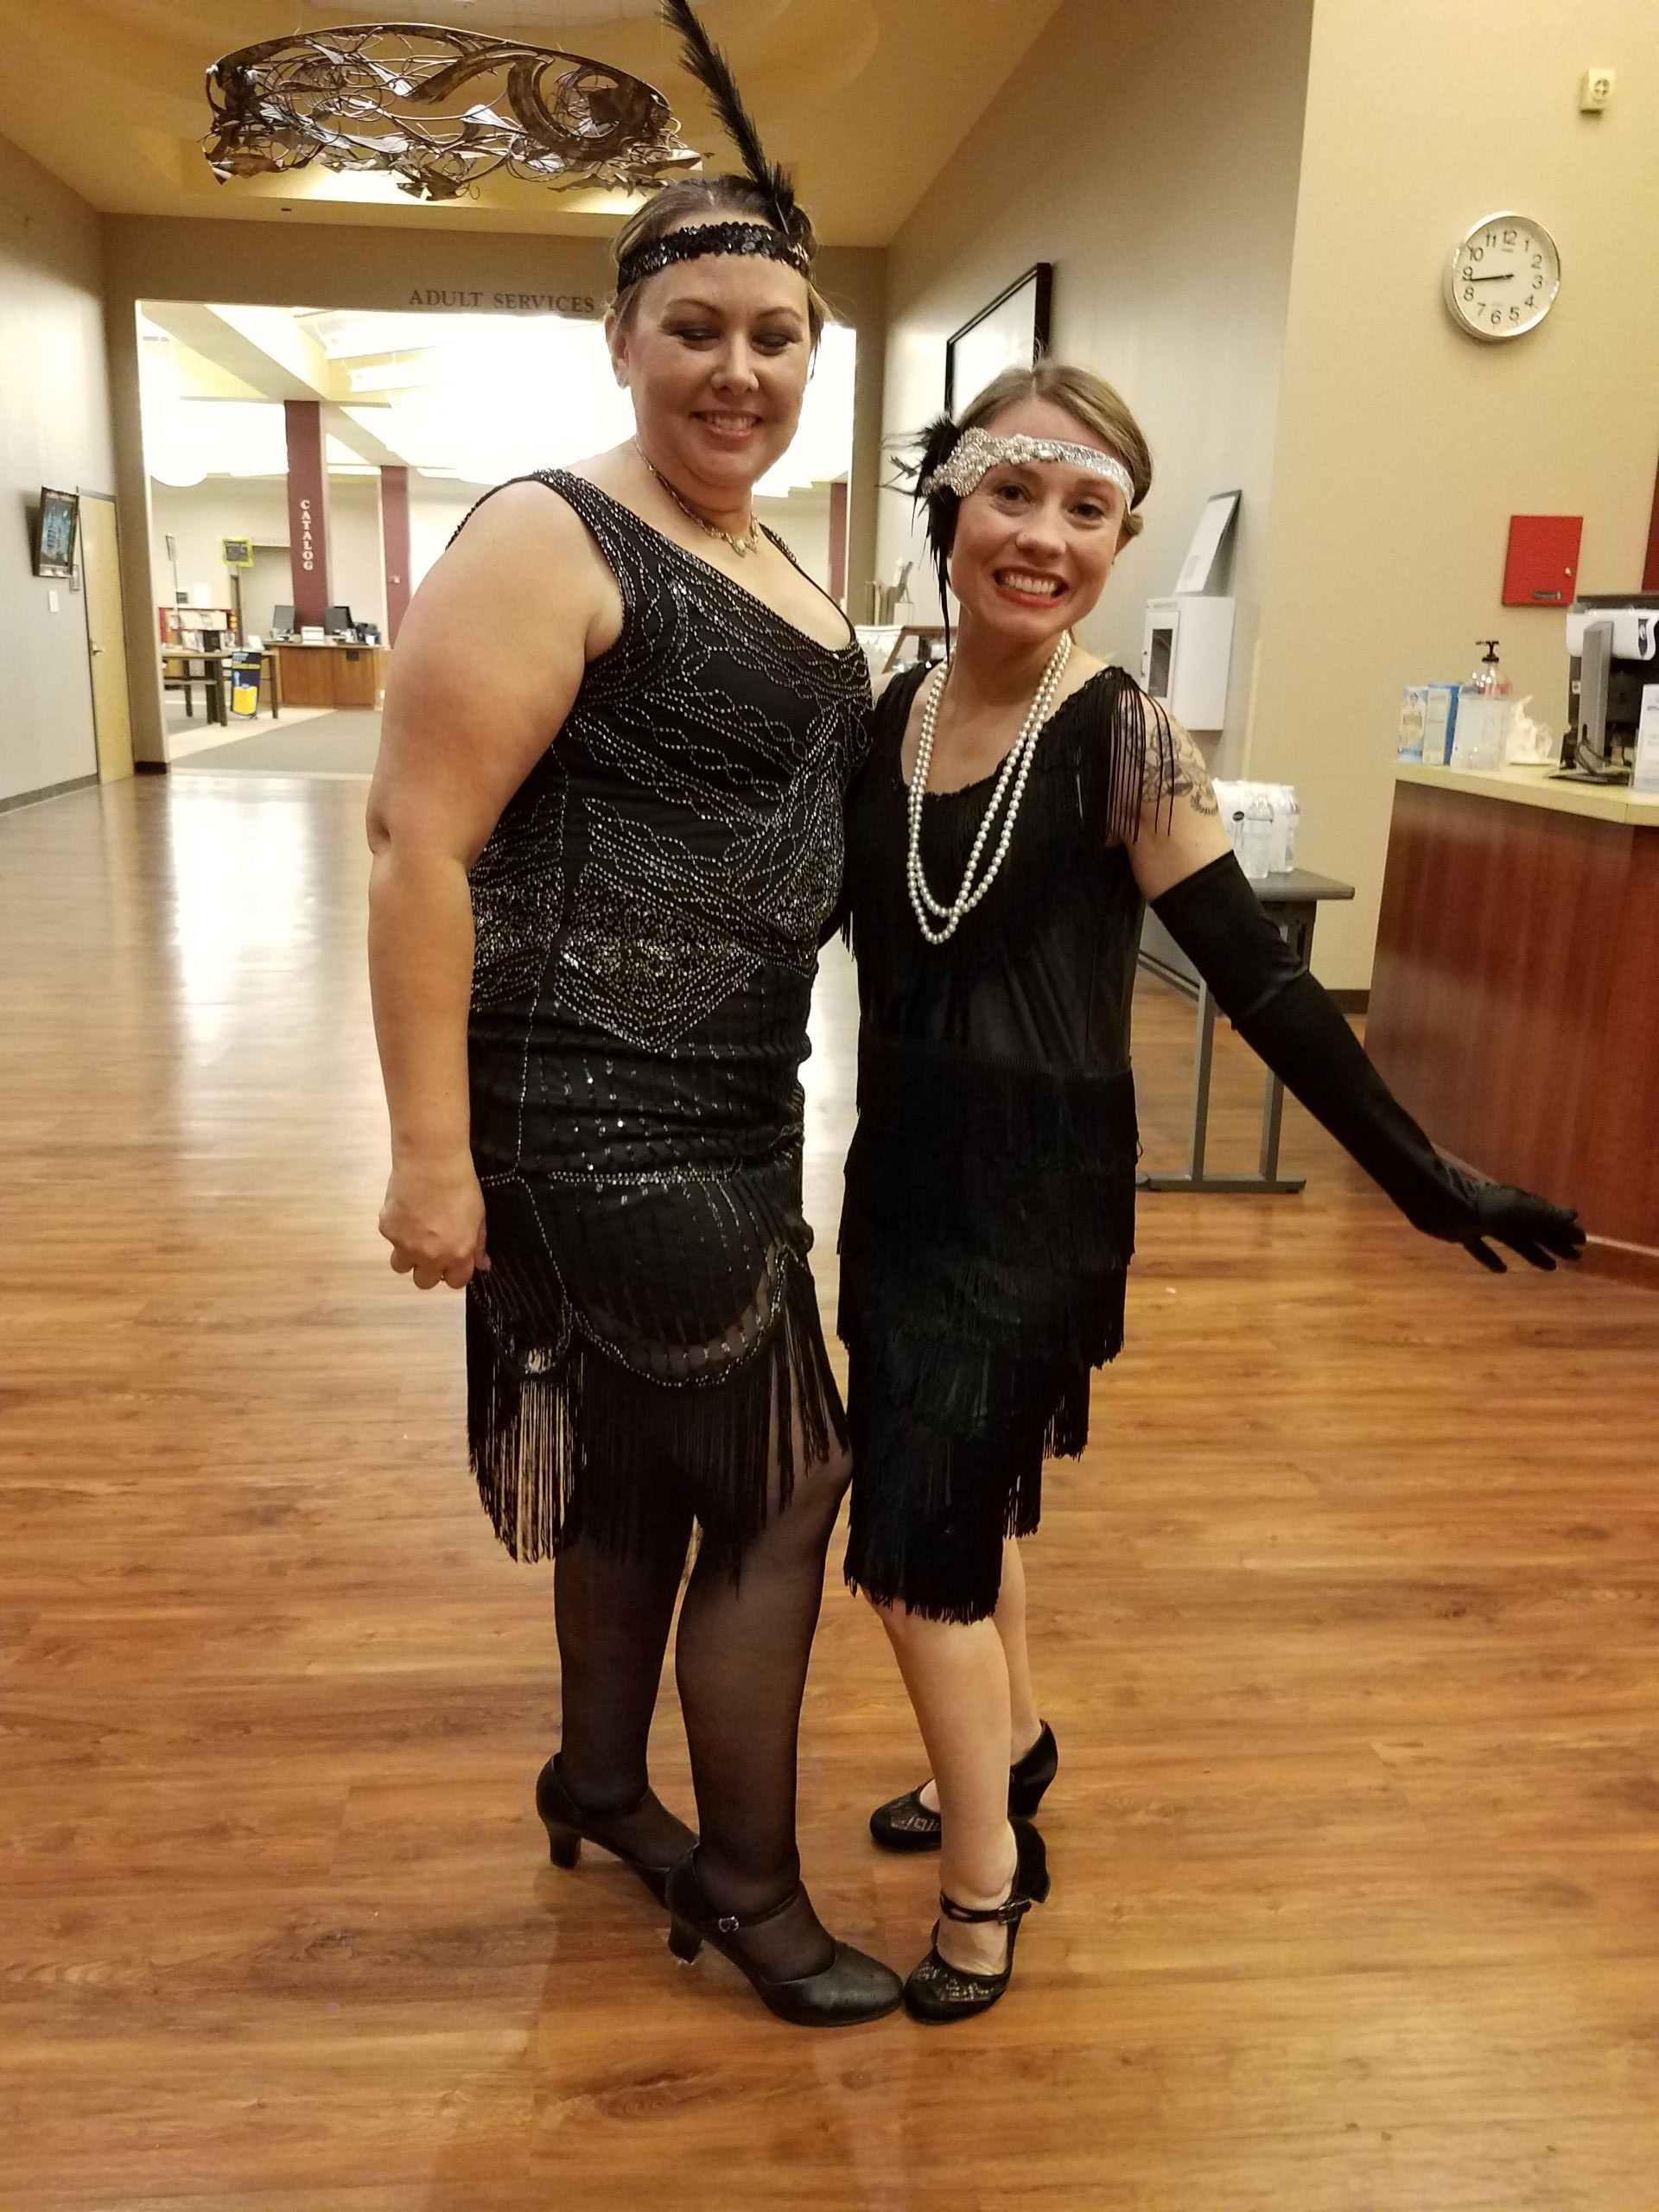 Photo of two women dressing in 1920s costumes